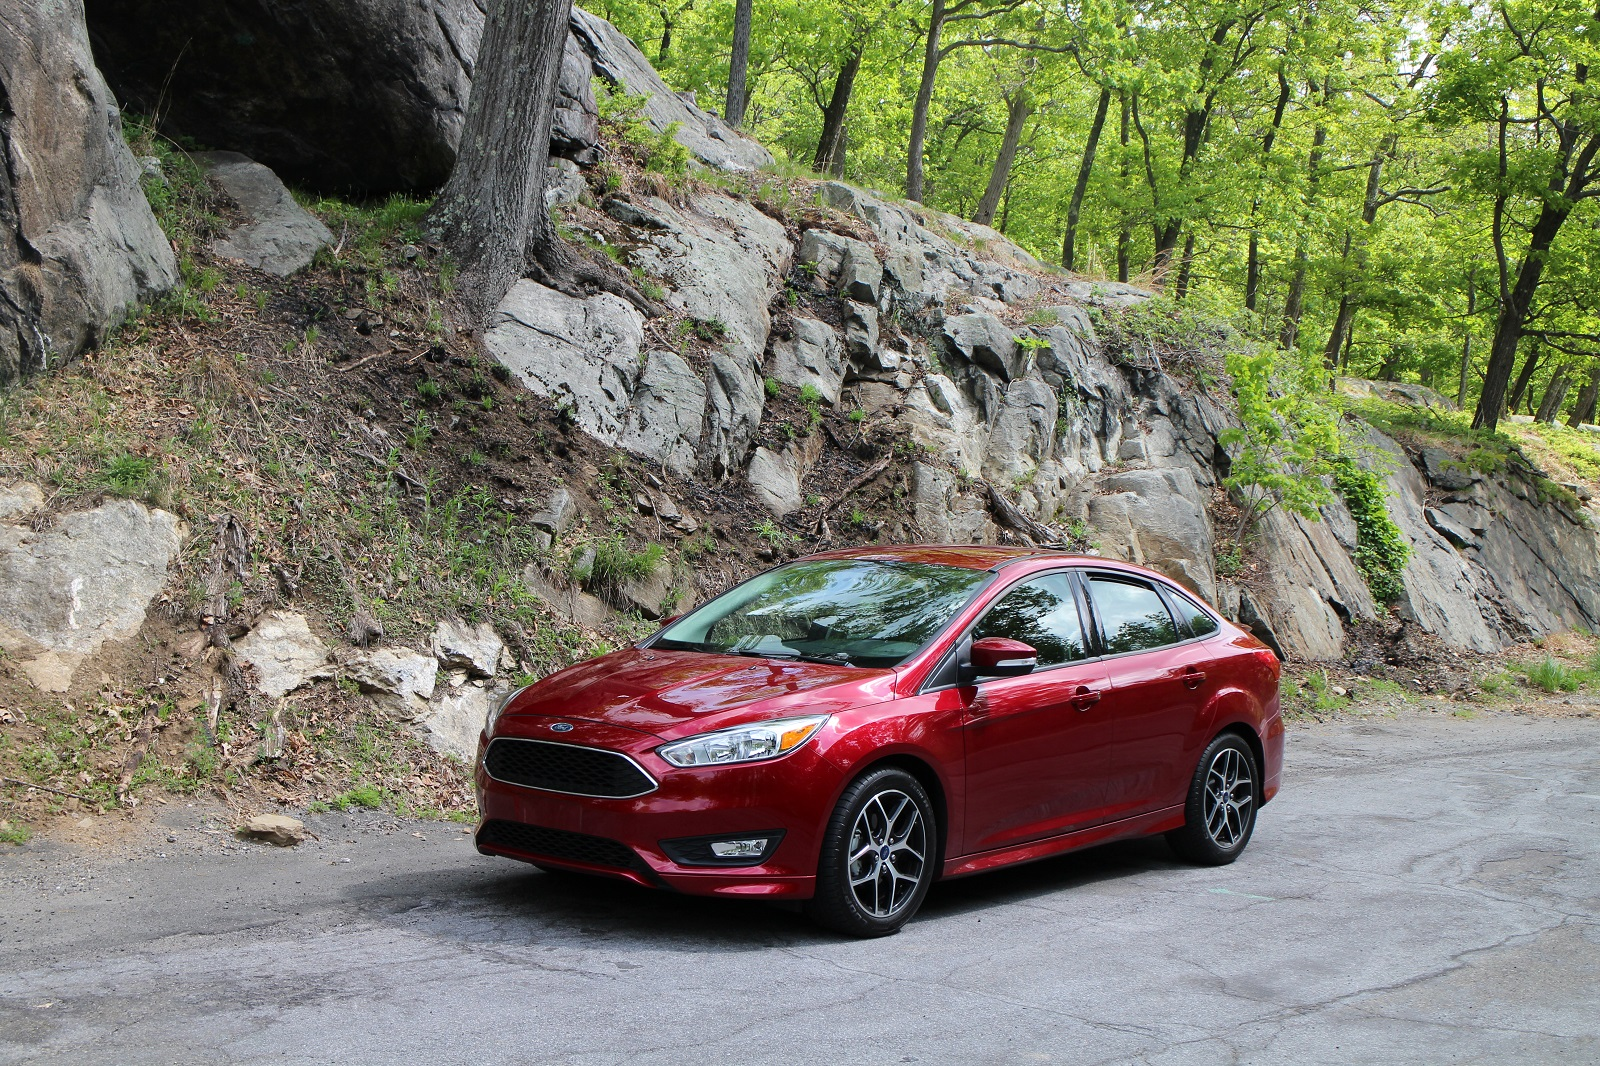 2015 Ford Focus 1.0L EcoBoost: Gas Mileage Review